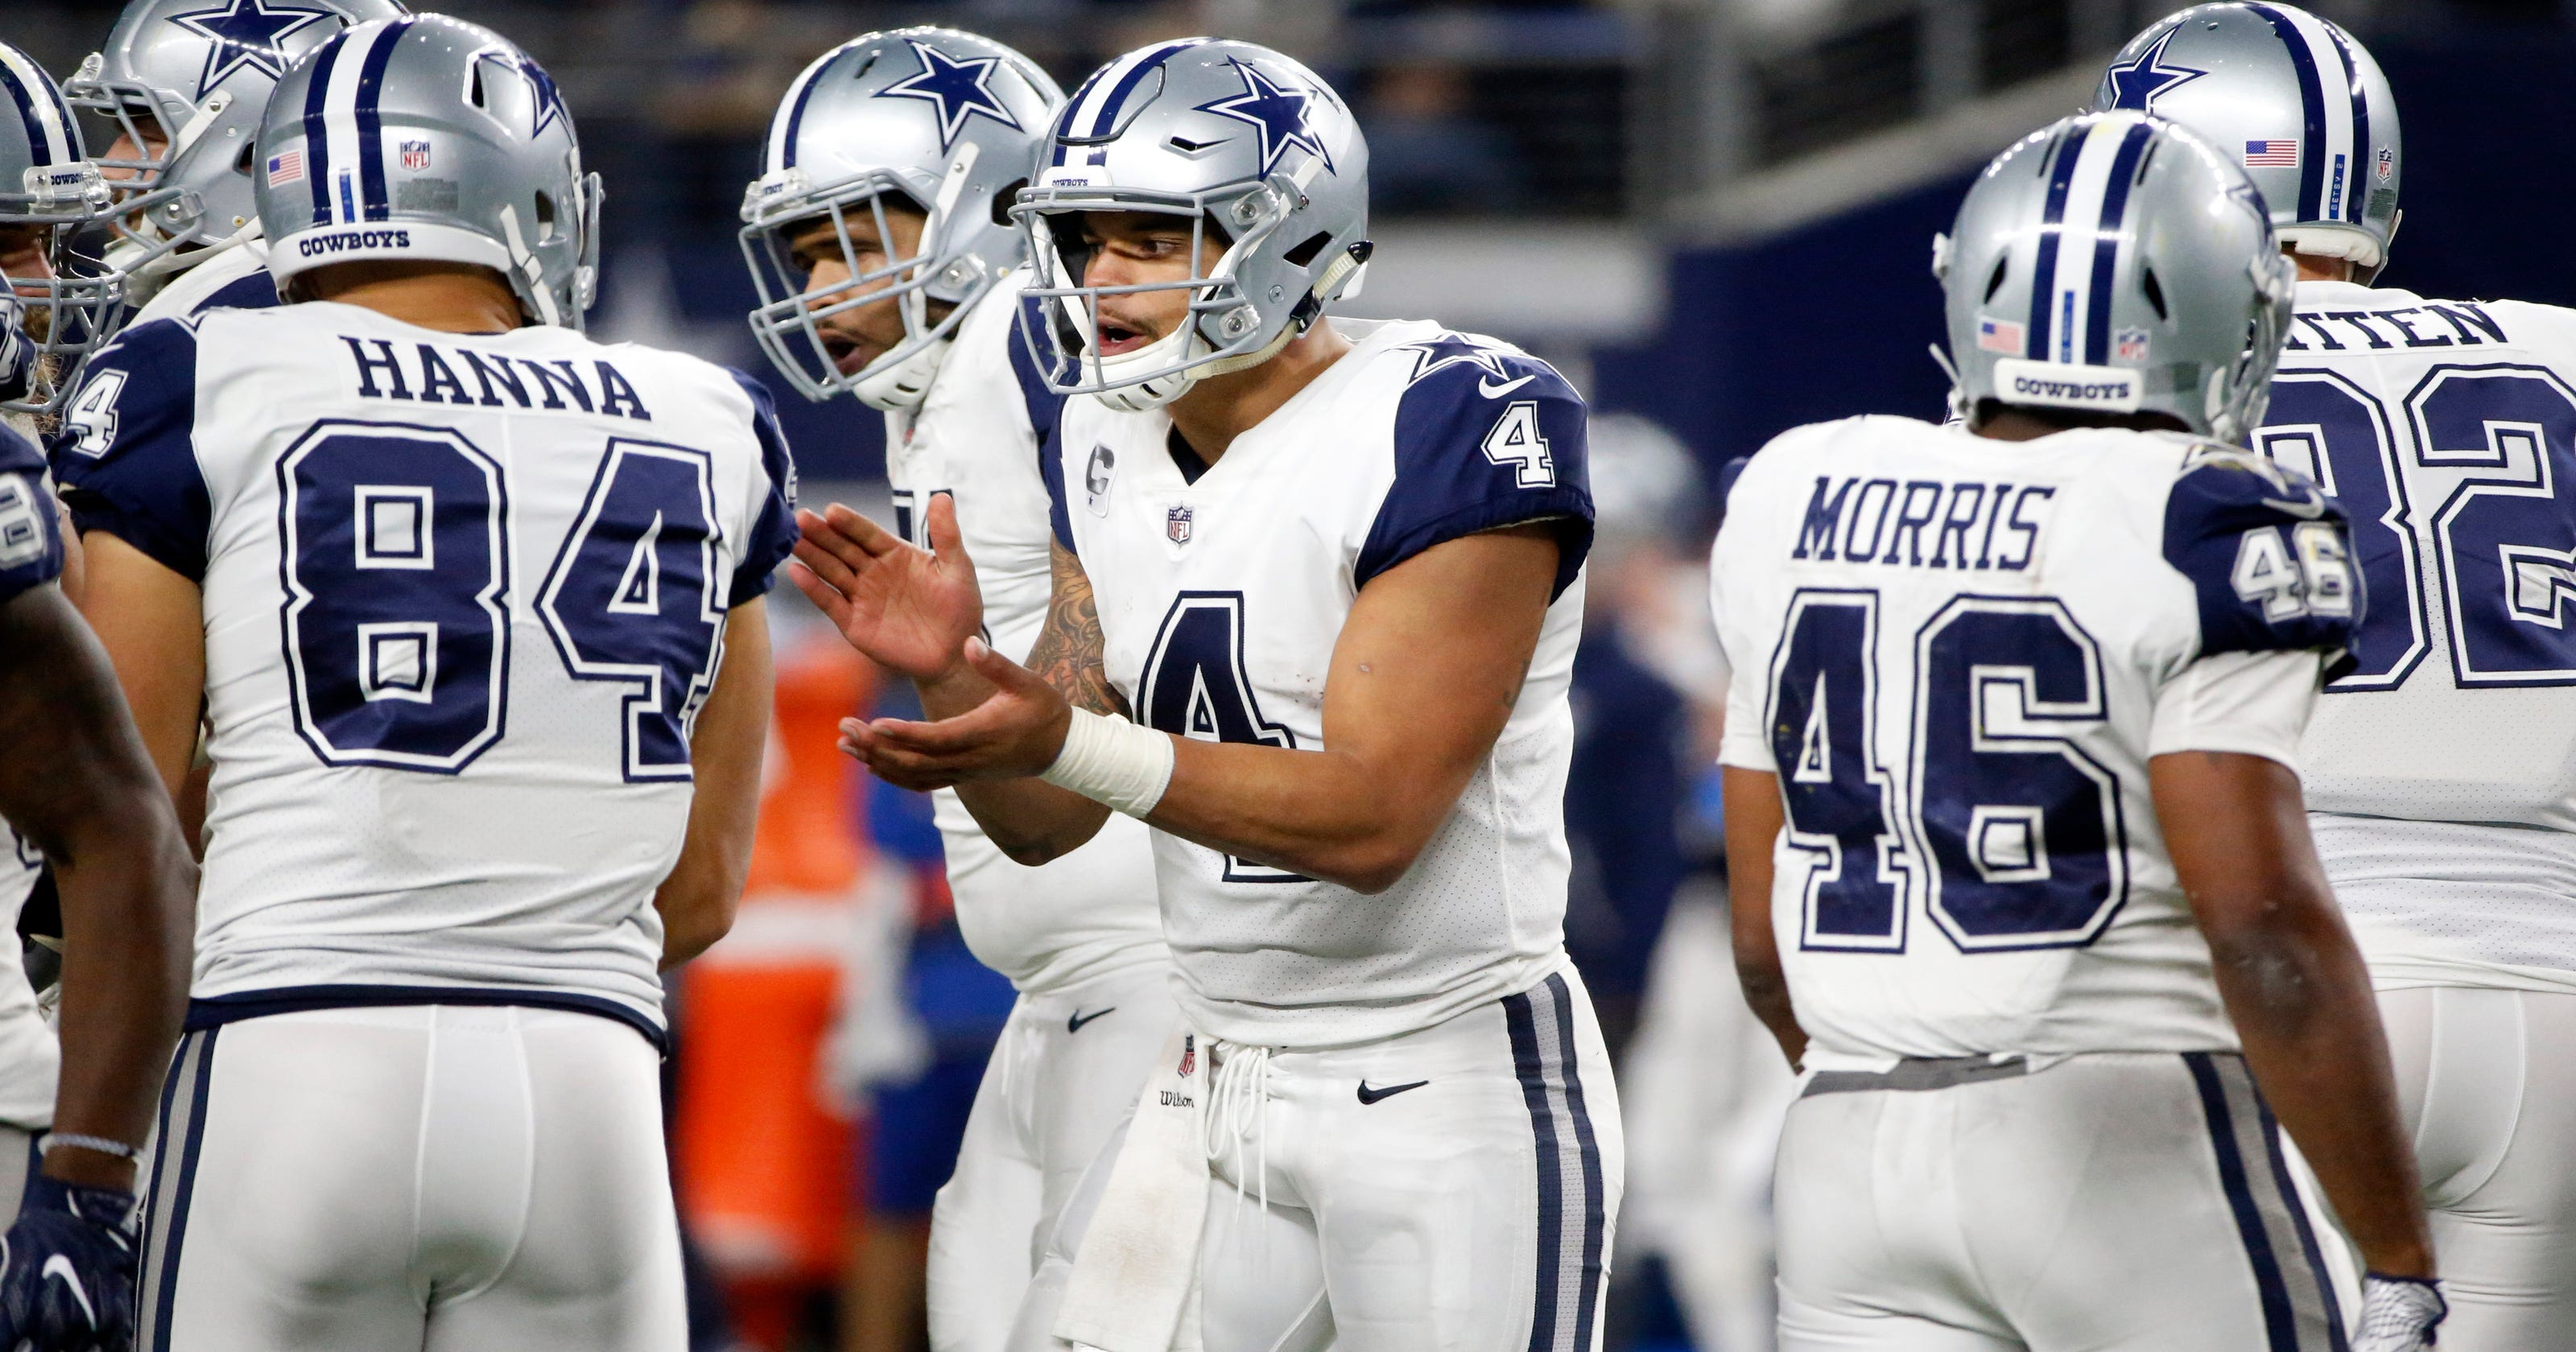 4447c6f3c Prescott embraces  playoffs start now  mentality for Cowboys